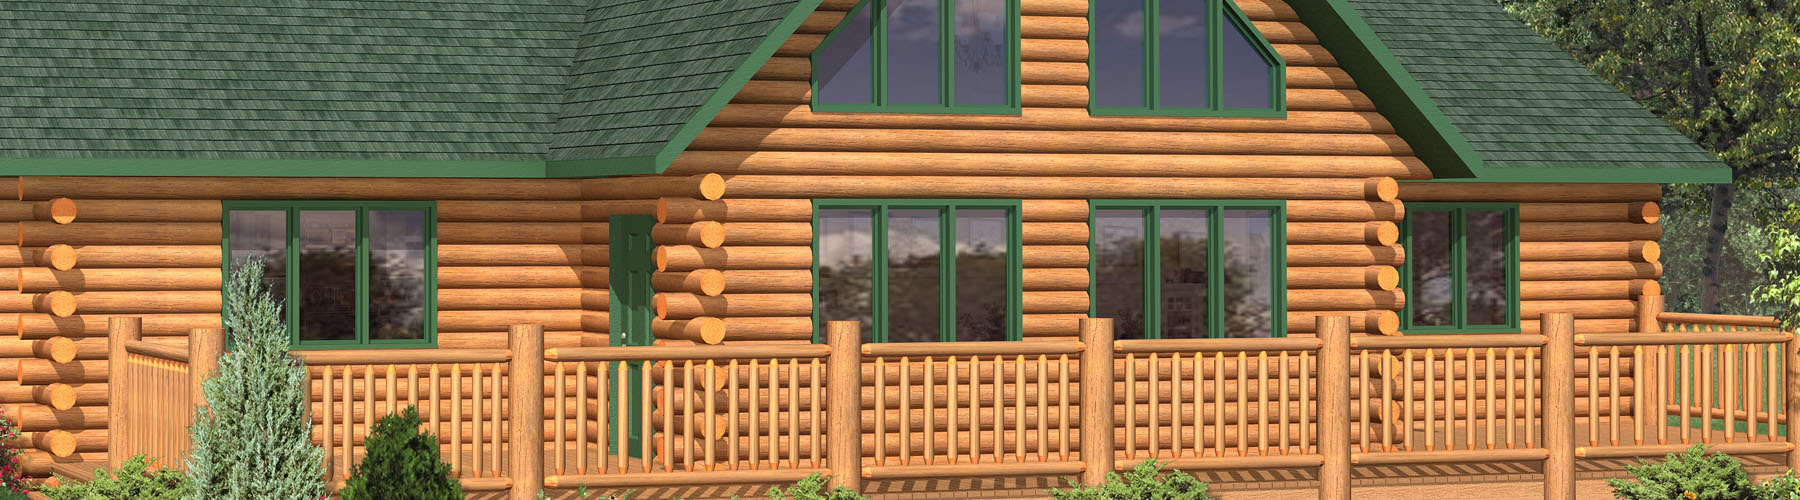 Log Cabin 2113A Lofted